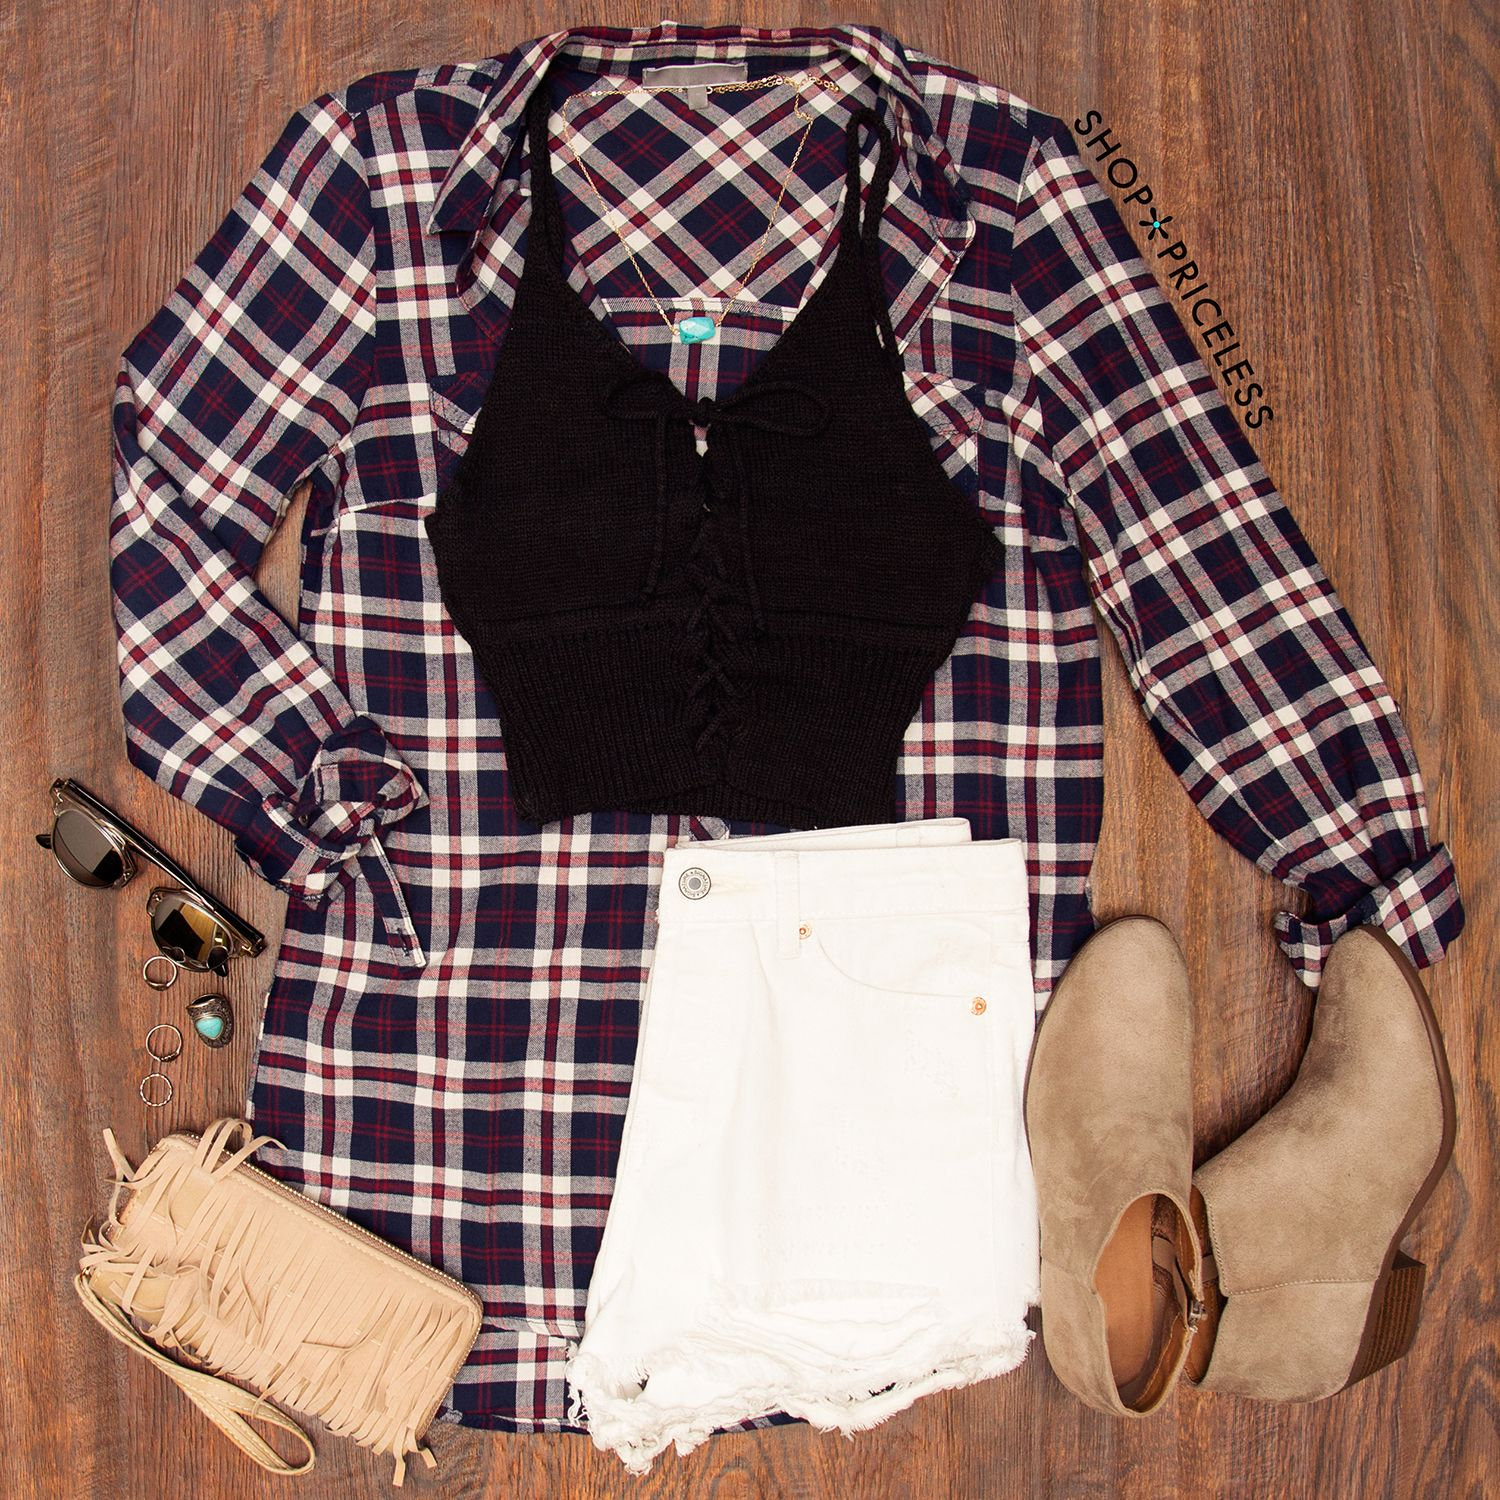 - Details - Size Guide - Model Stats - Contact Good girl gone bad! This Well Behaved Plaid Top features a soft fabric with minimal stretch in a multi-colored plaid print. Button-down front closure, a